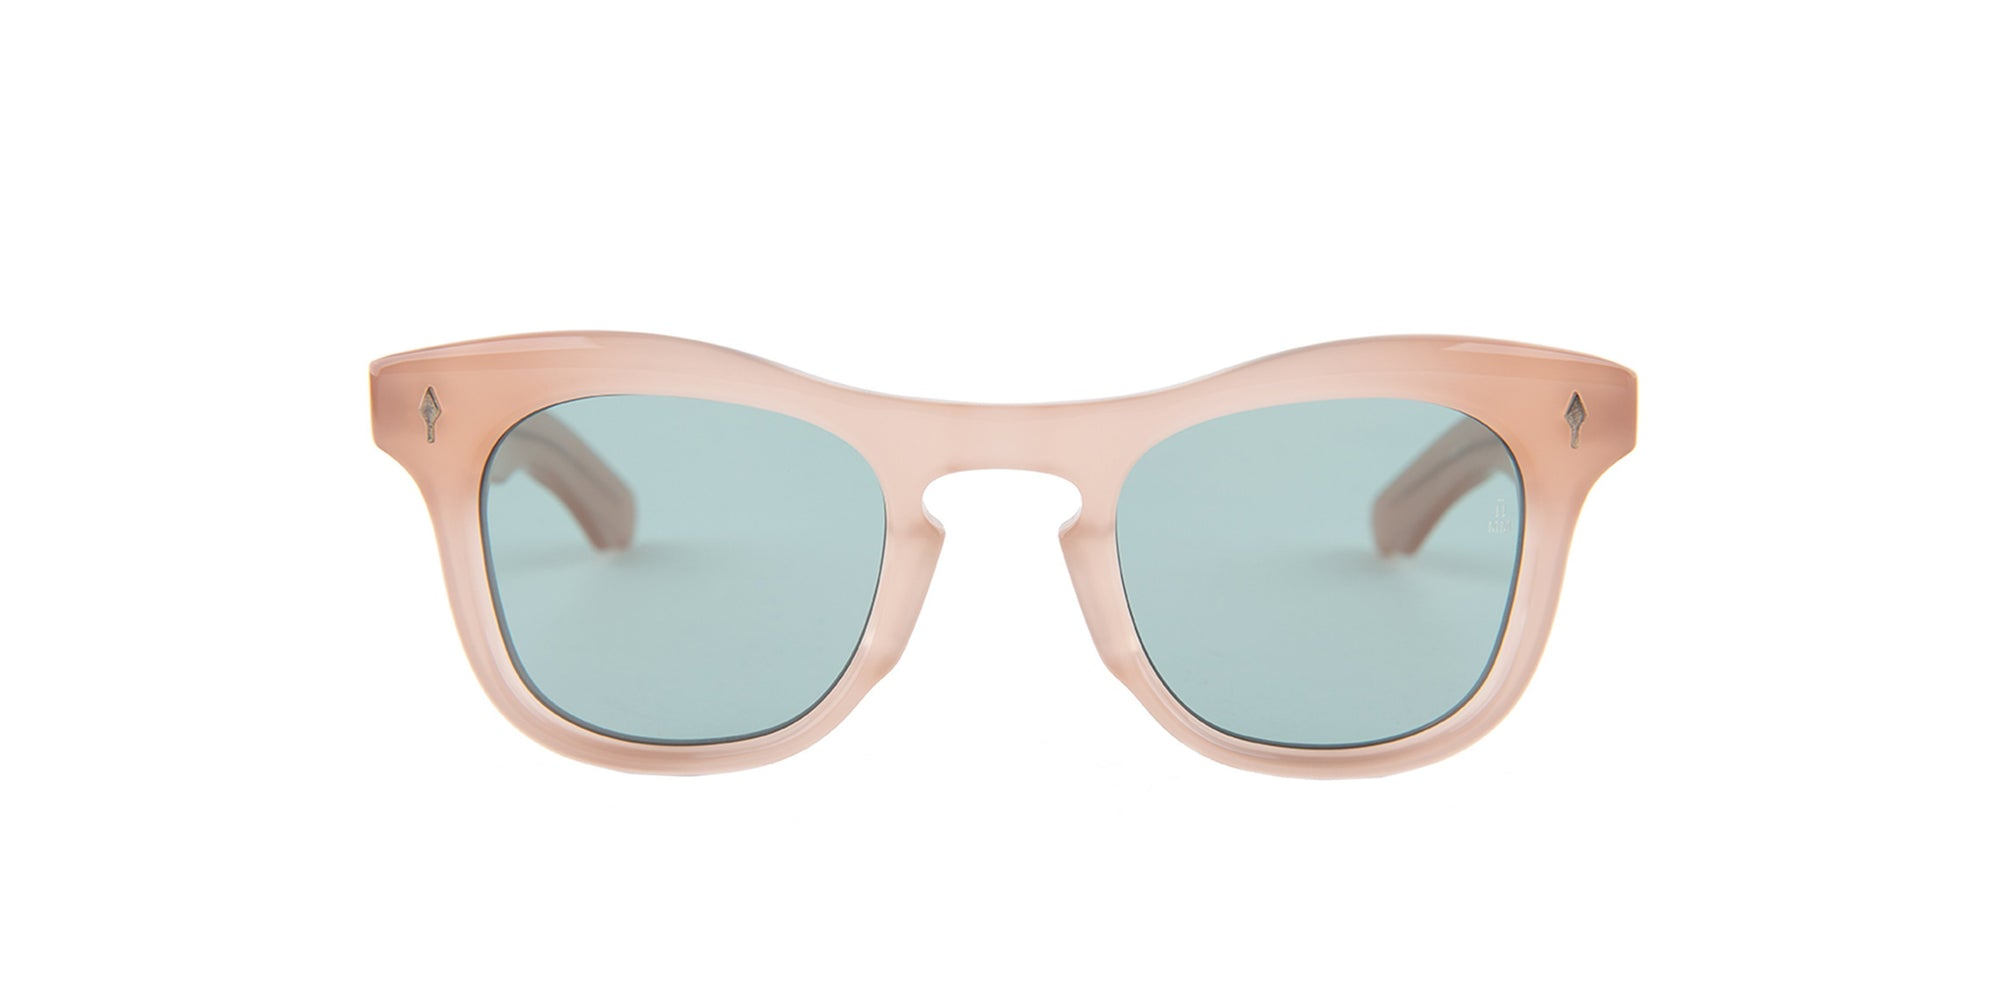 Jacques Marie Mage - Dorothy Pink/Blue Solid Unisex Sunglasses - 41mm-Sunglasses-Designer Eyes